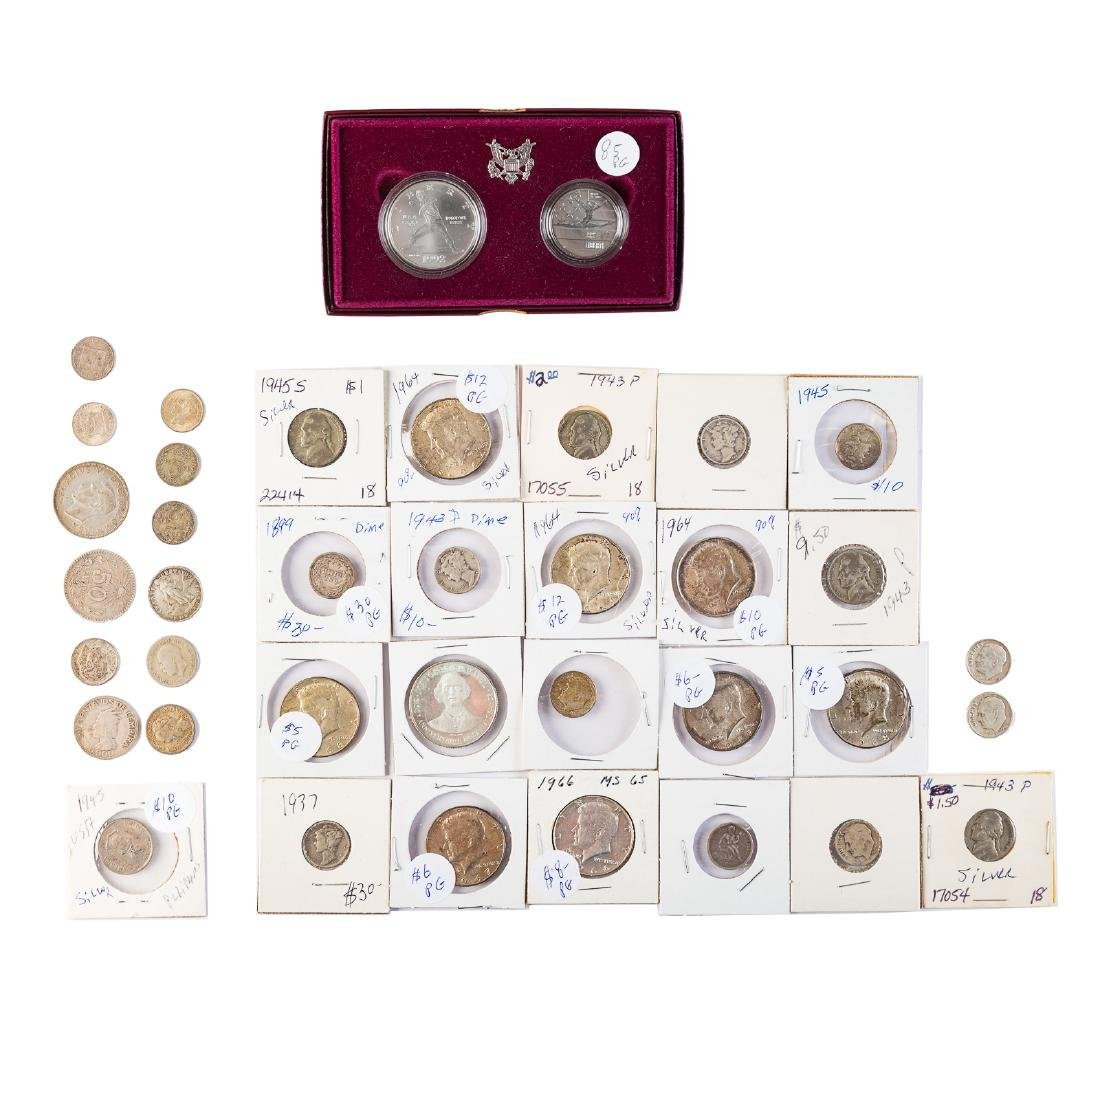 Silver coins and collectibles